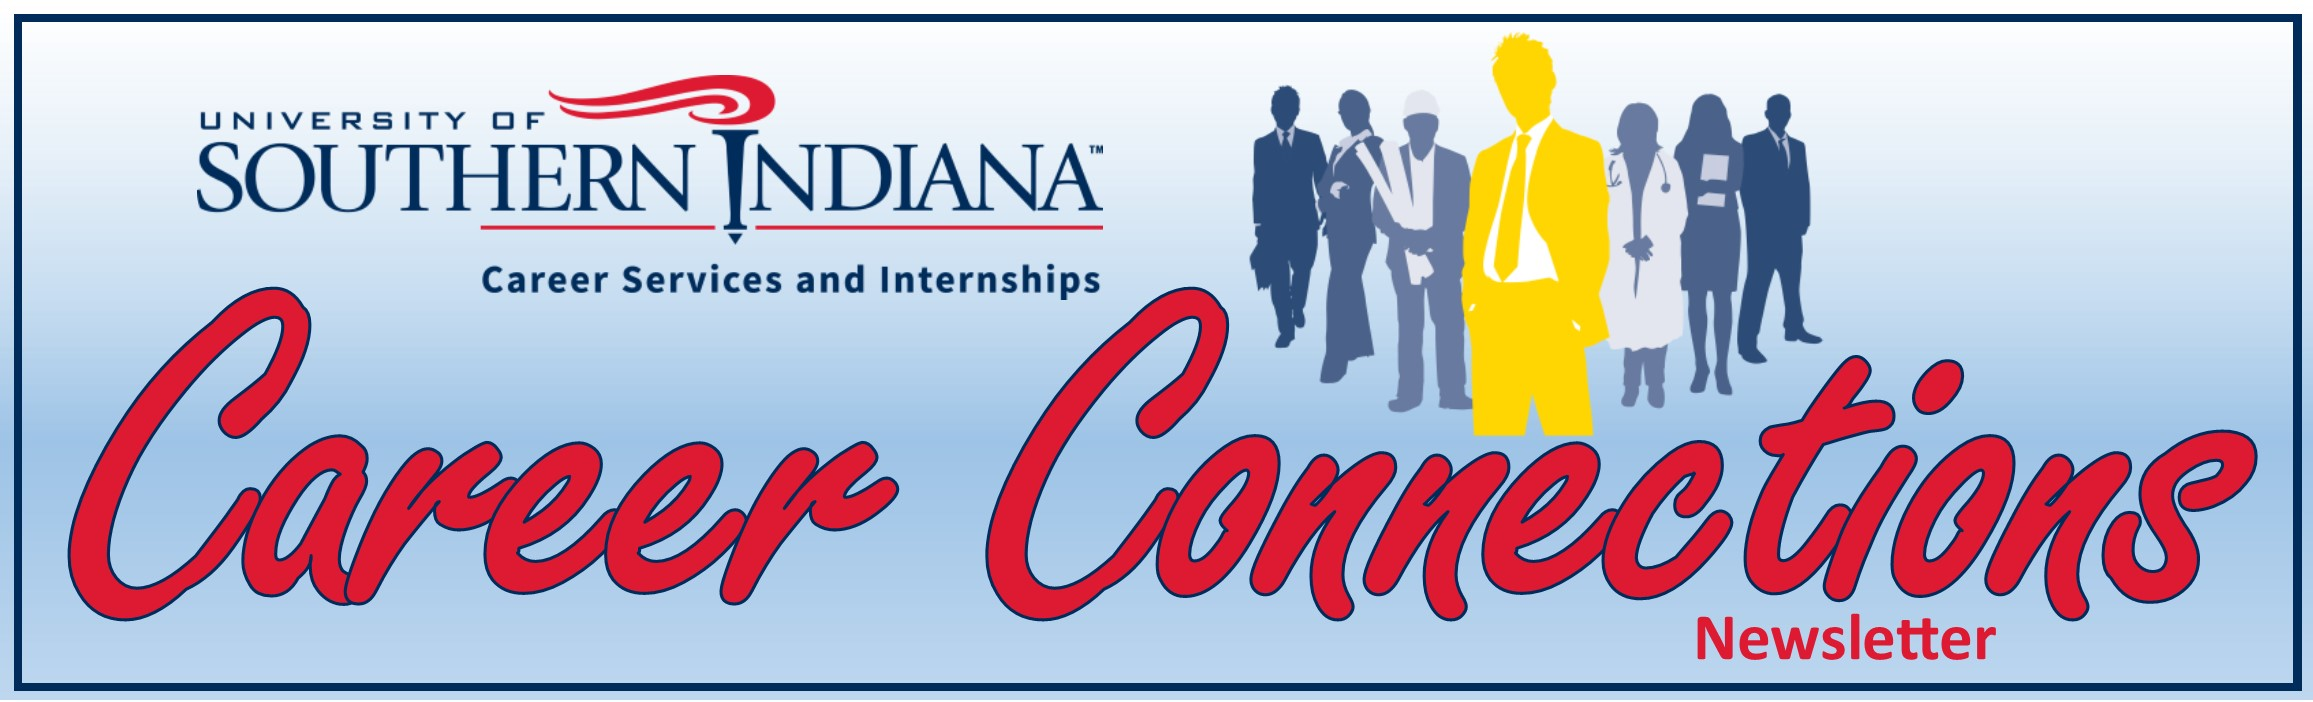 USI Career Connections Newsletter